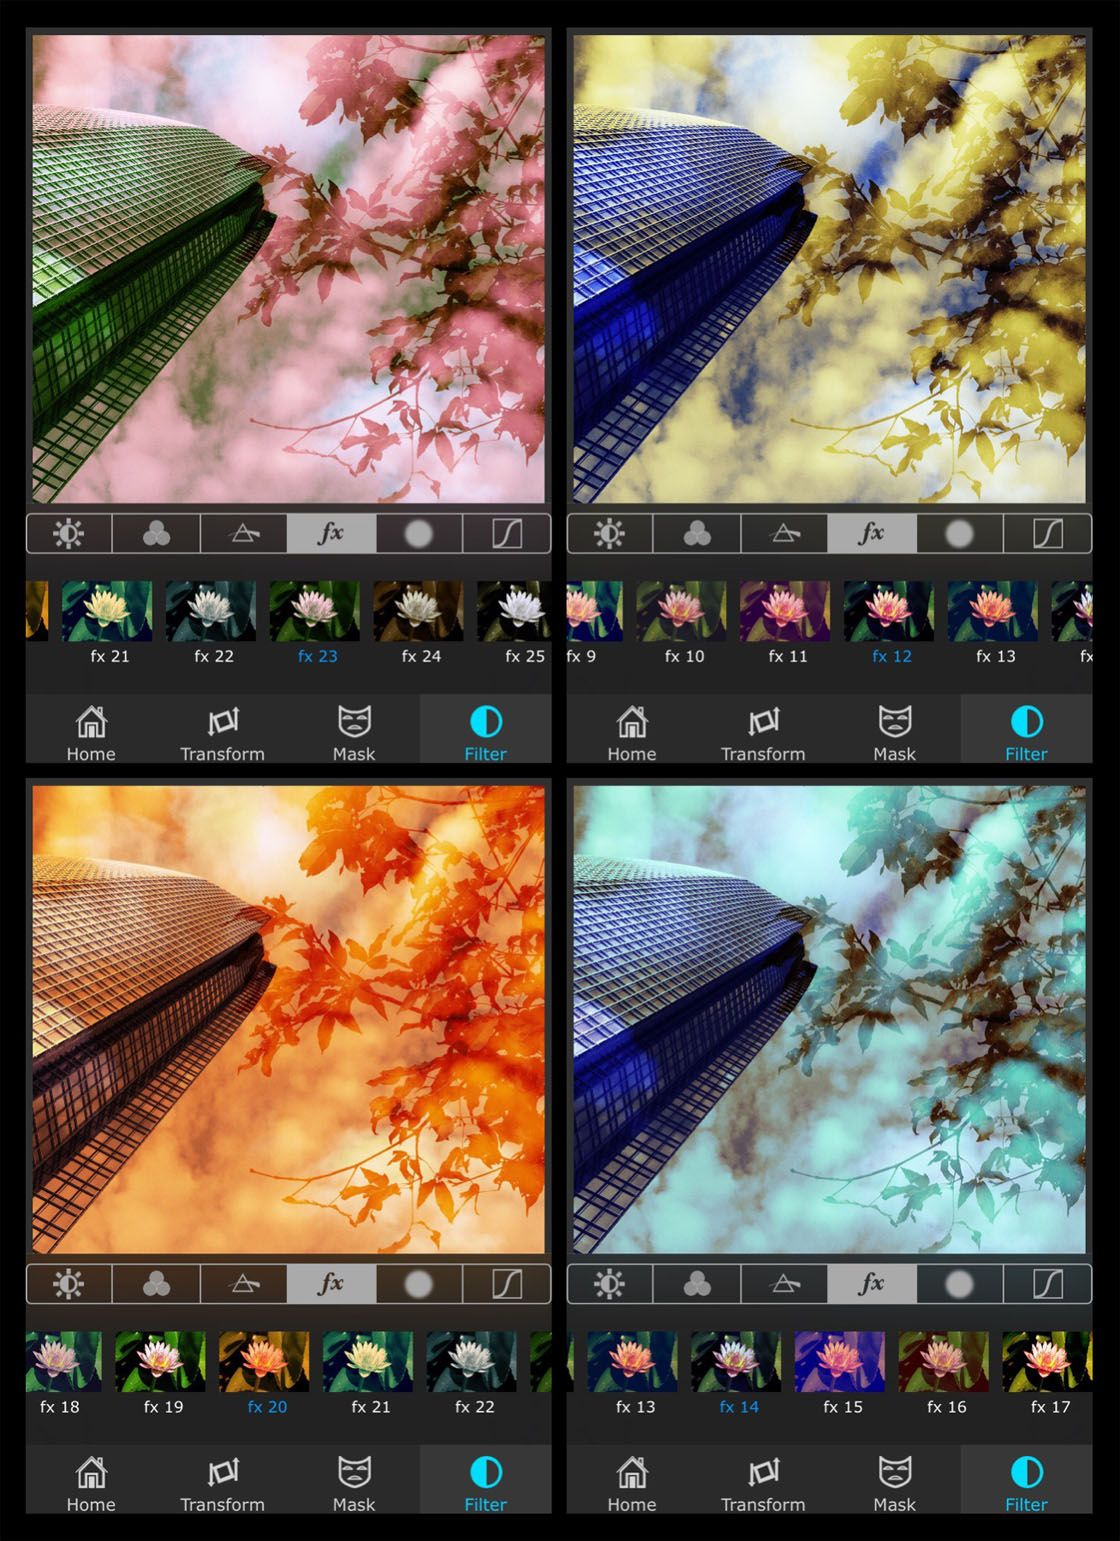 How To Use Superimpose X App For Creative Photo Editing On